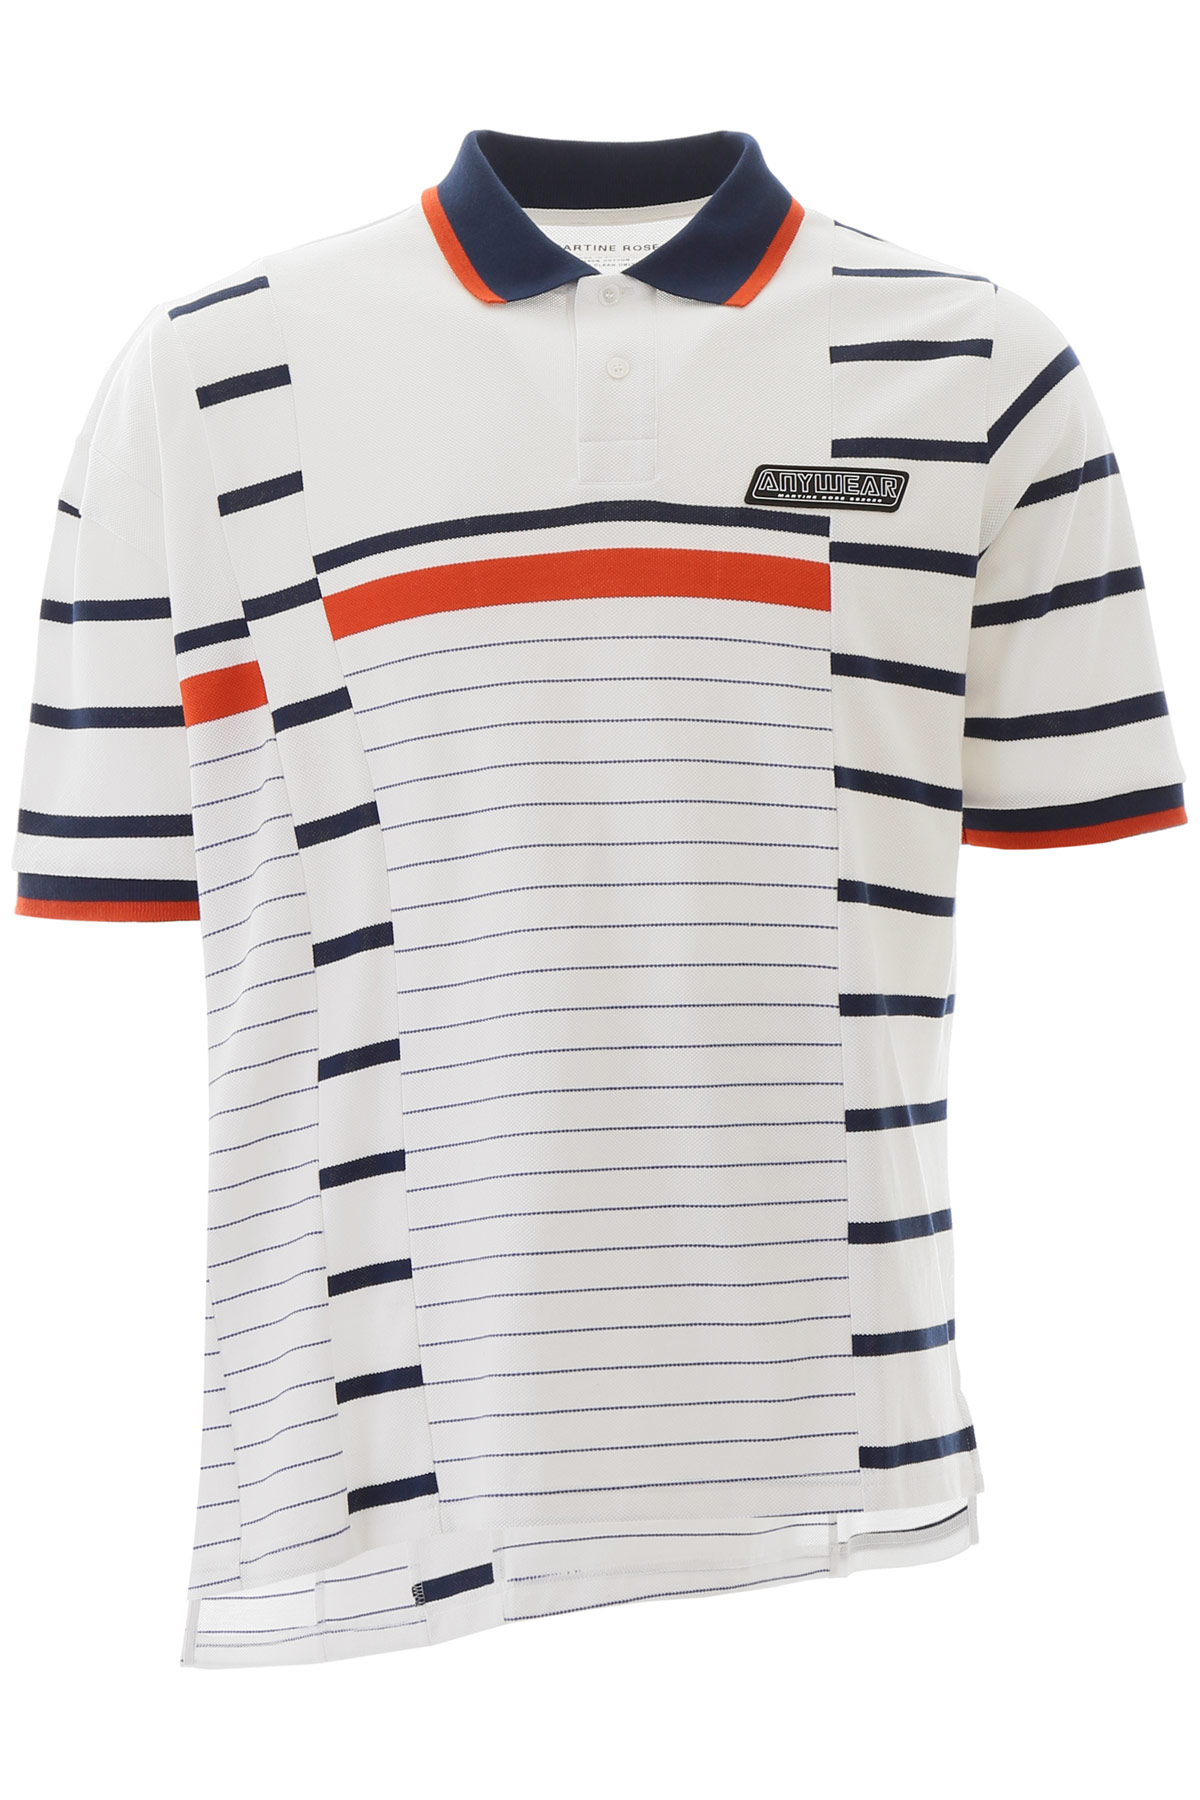 MARTINE ROSE STRIPED POLO SHIRT S Blue, White, Brown Cotton